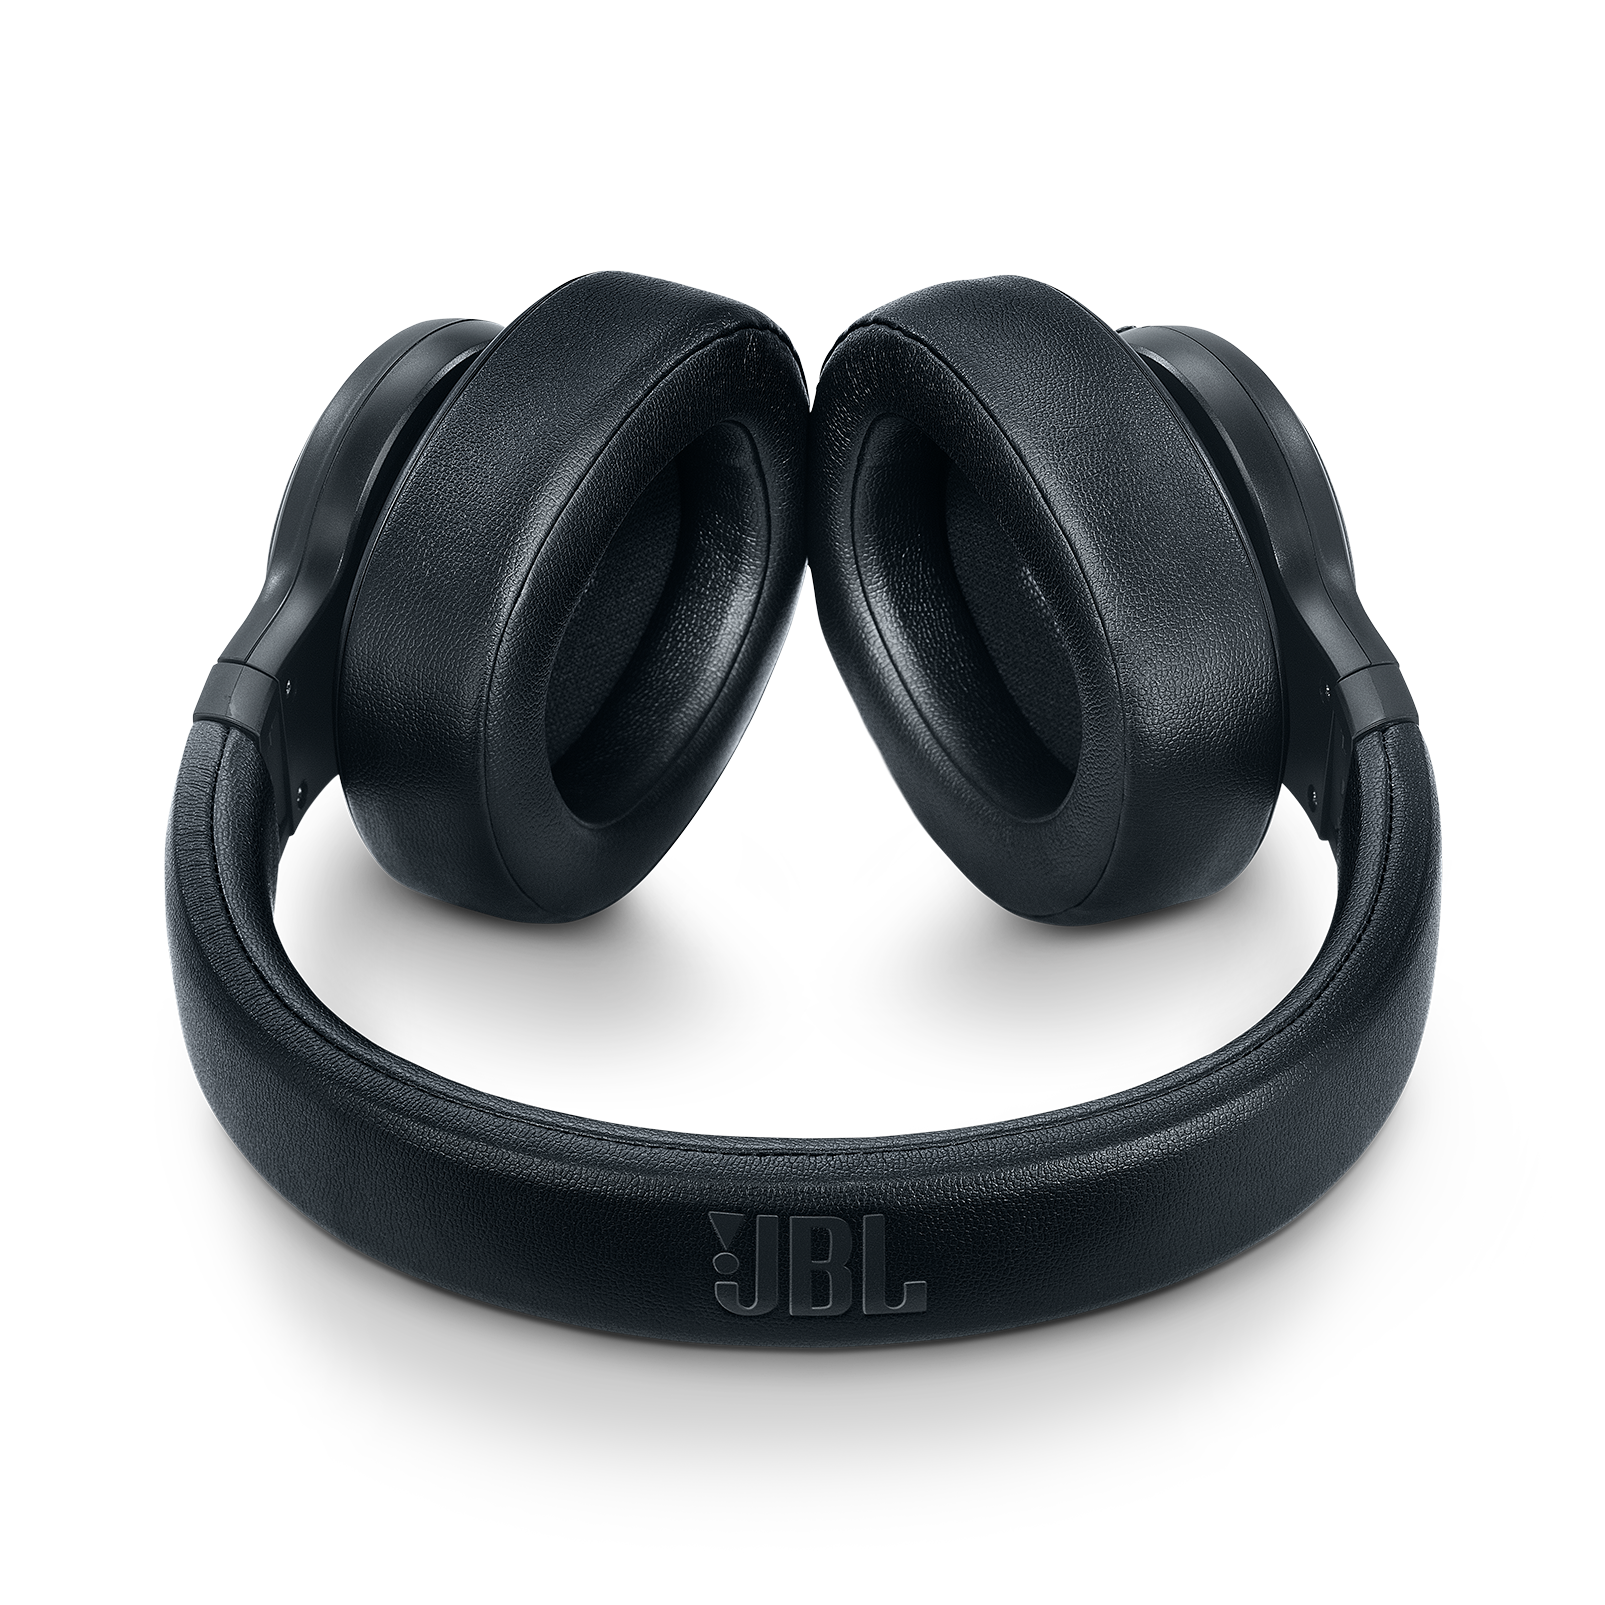 JBL Duet NC - Black Matte - Wireless over-ear noise-cancelling headphones - Detailshot 1